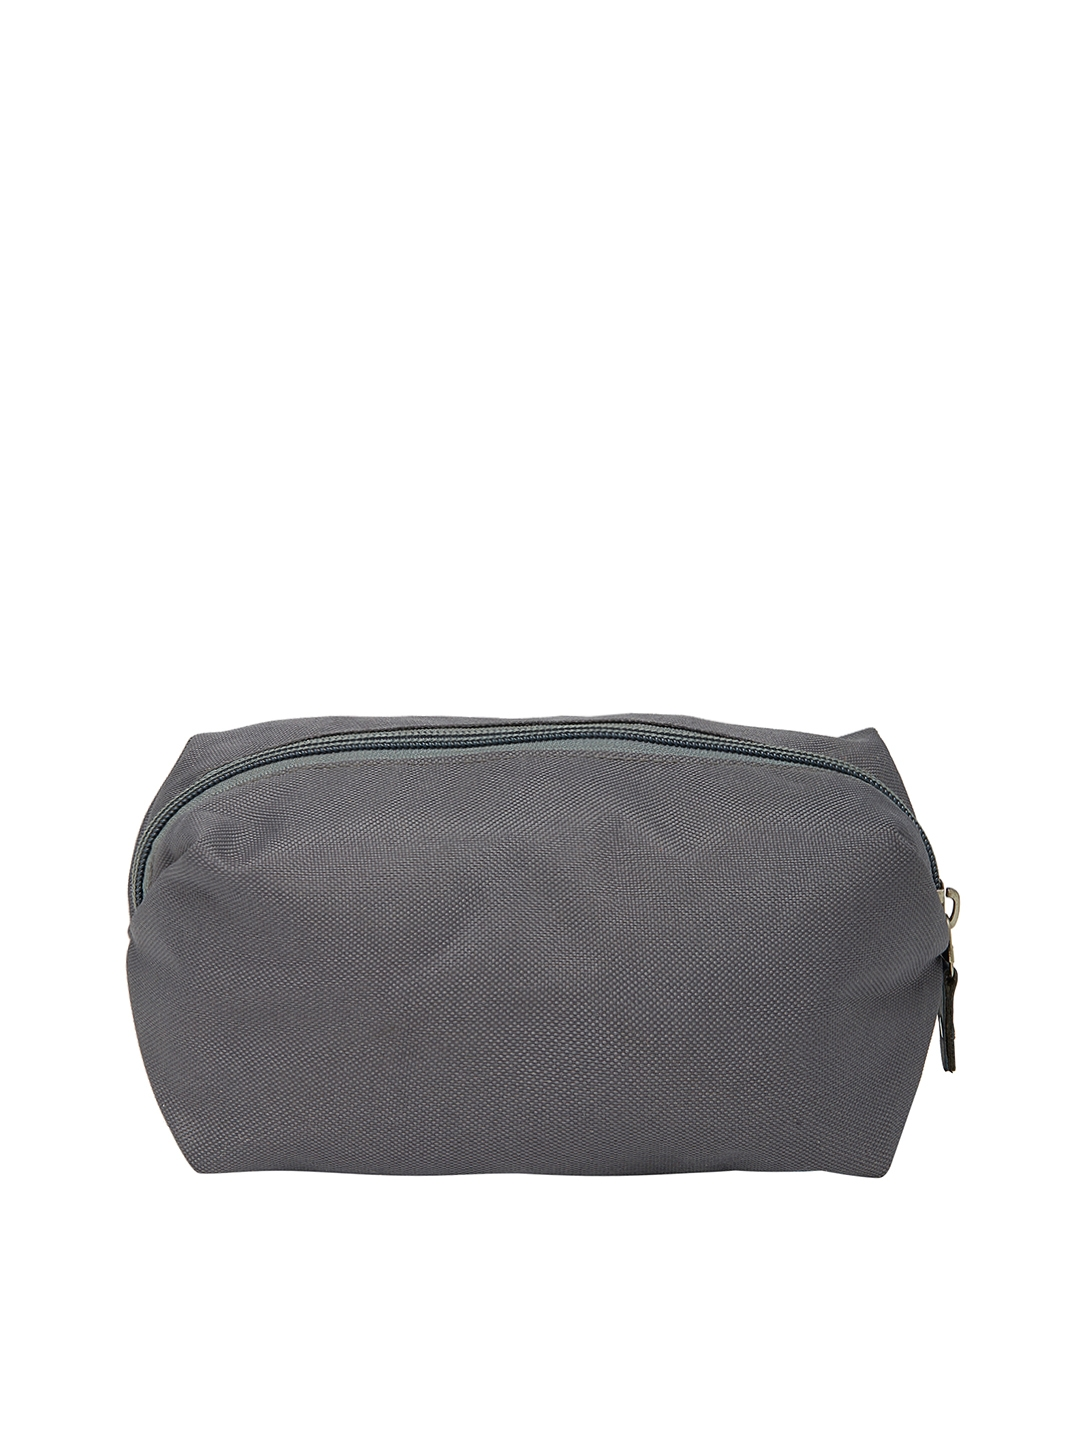 Bags.R.us Unisex Grey Travel Toiletry Kit